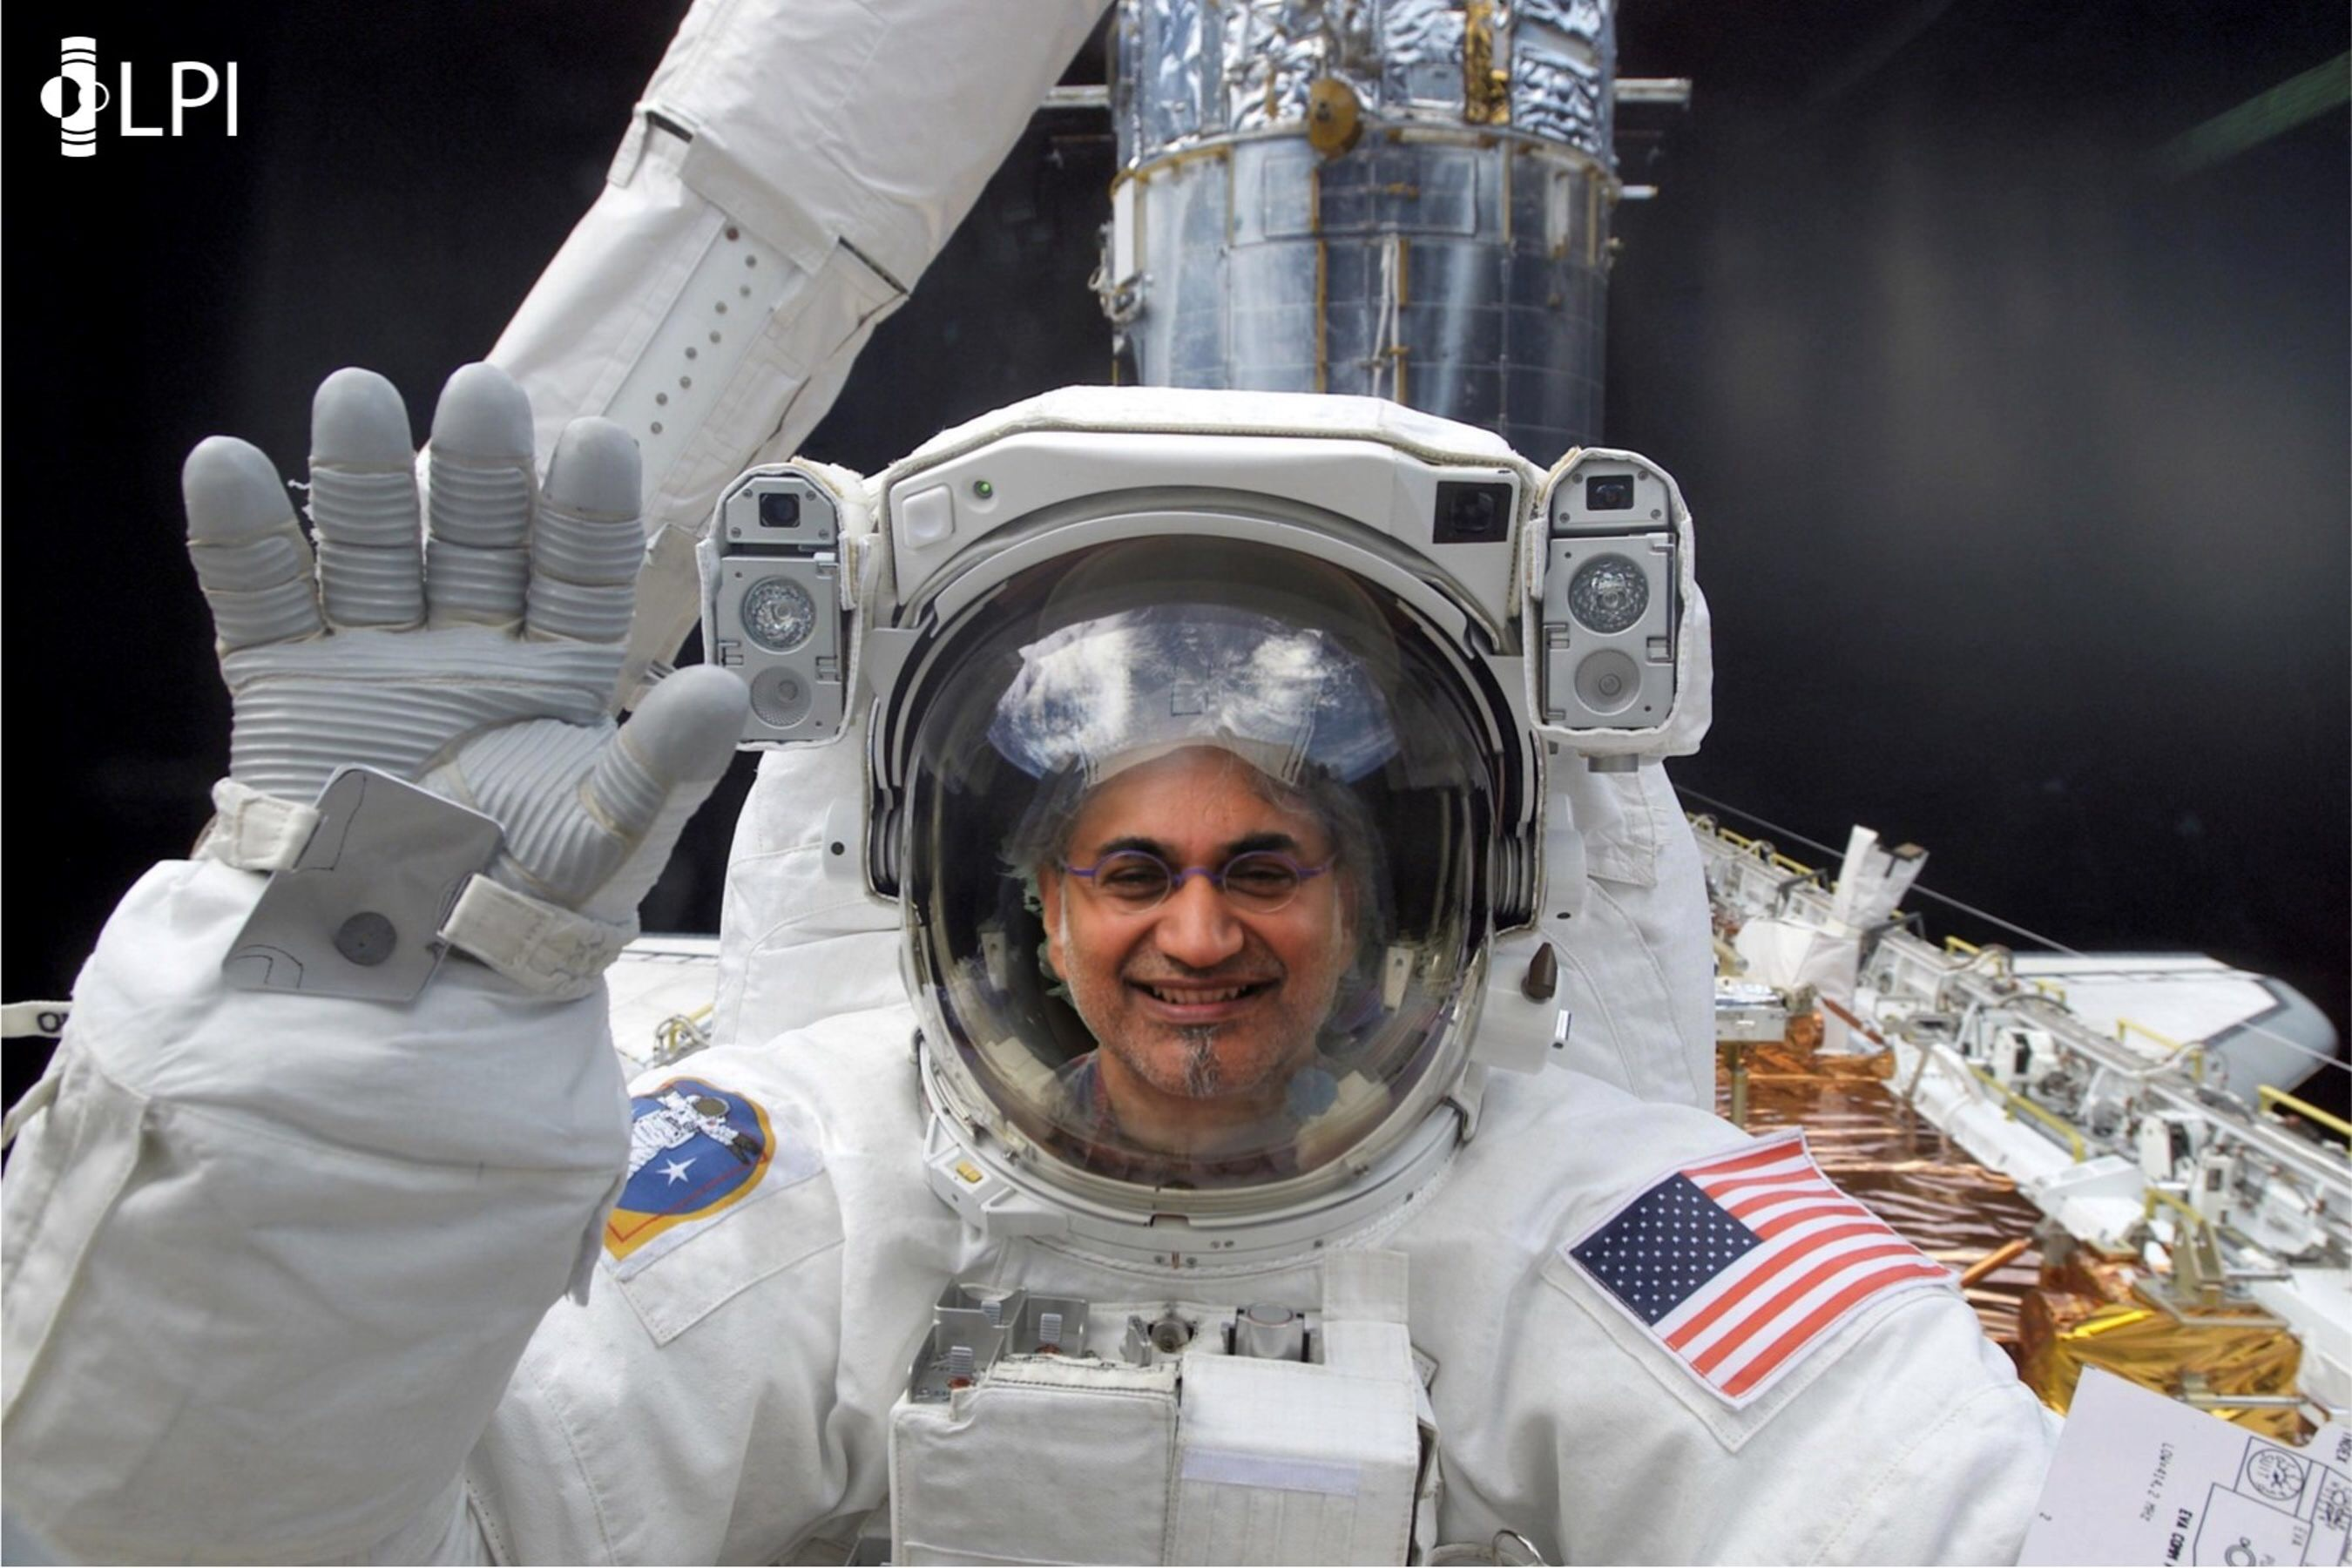 Ajit_Spacesuit